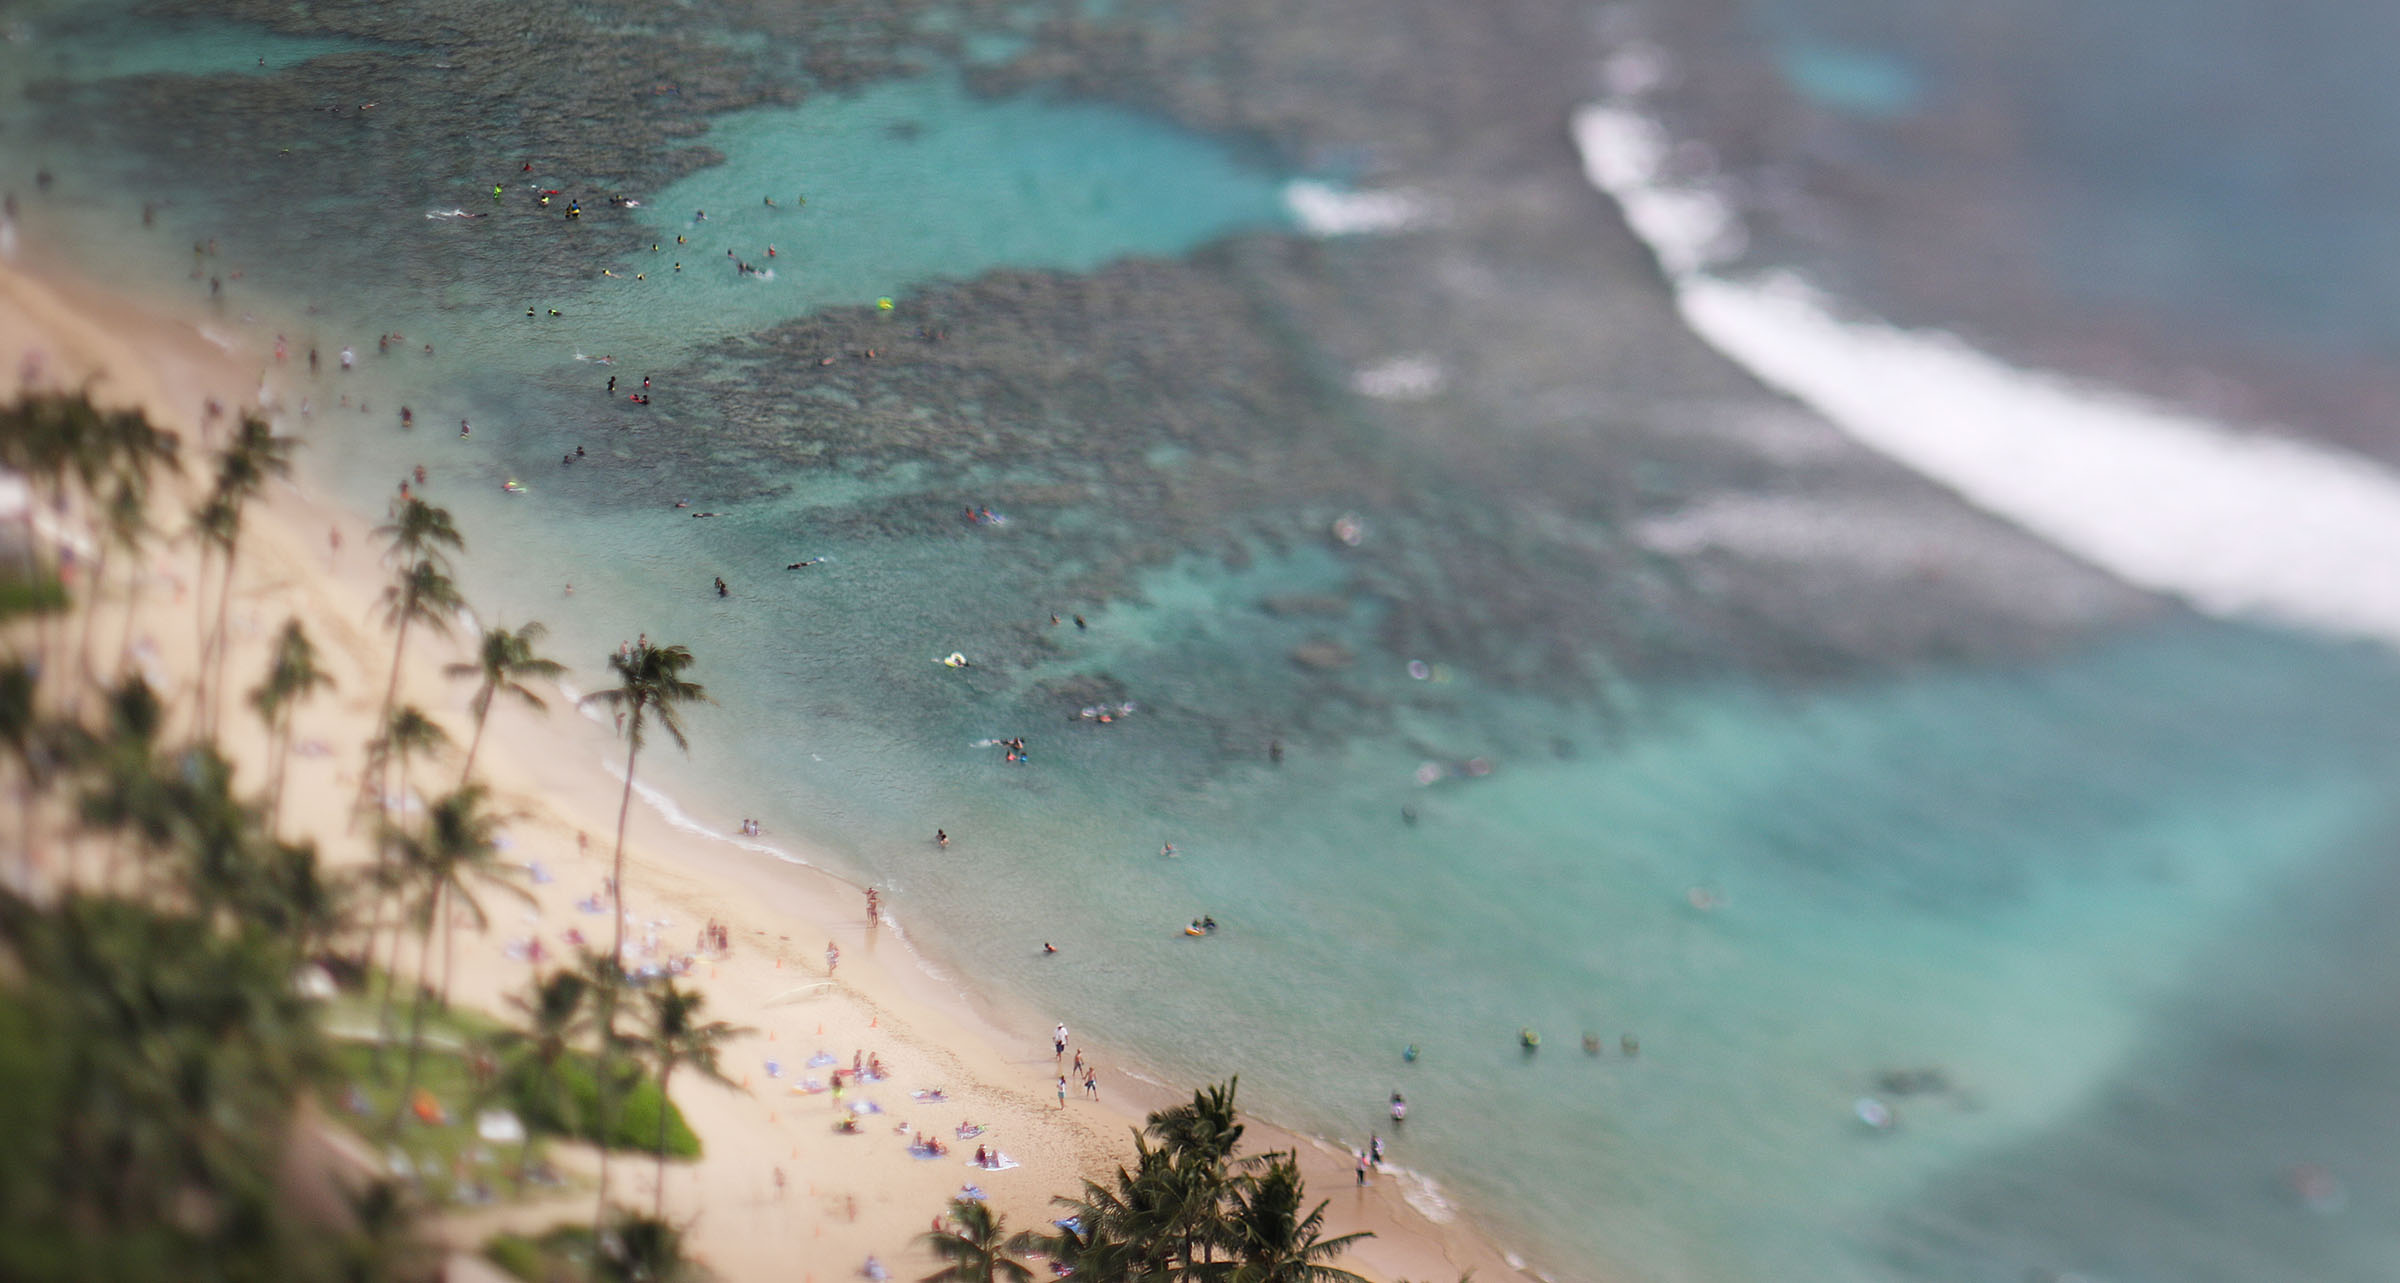 <p>The view from atop Hanauma Bay, using a tilt-shift lens.</p>